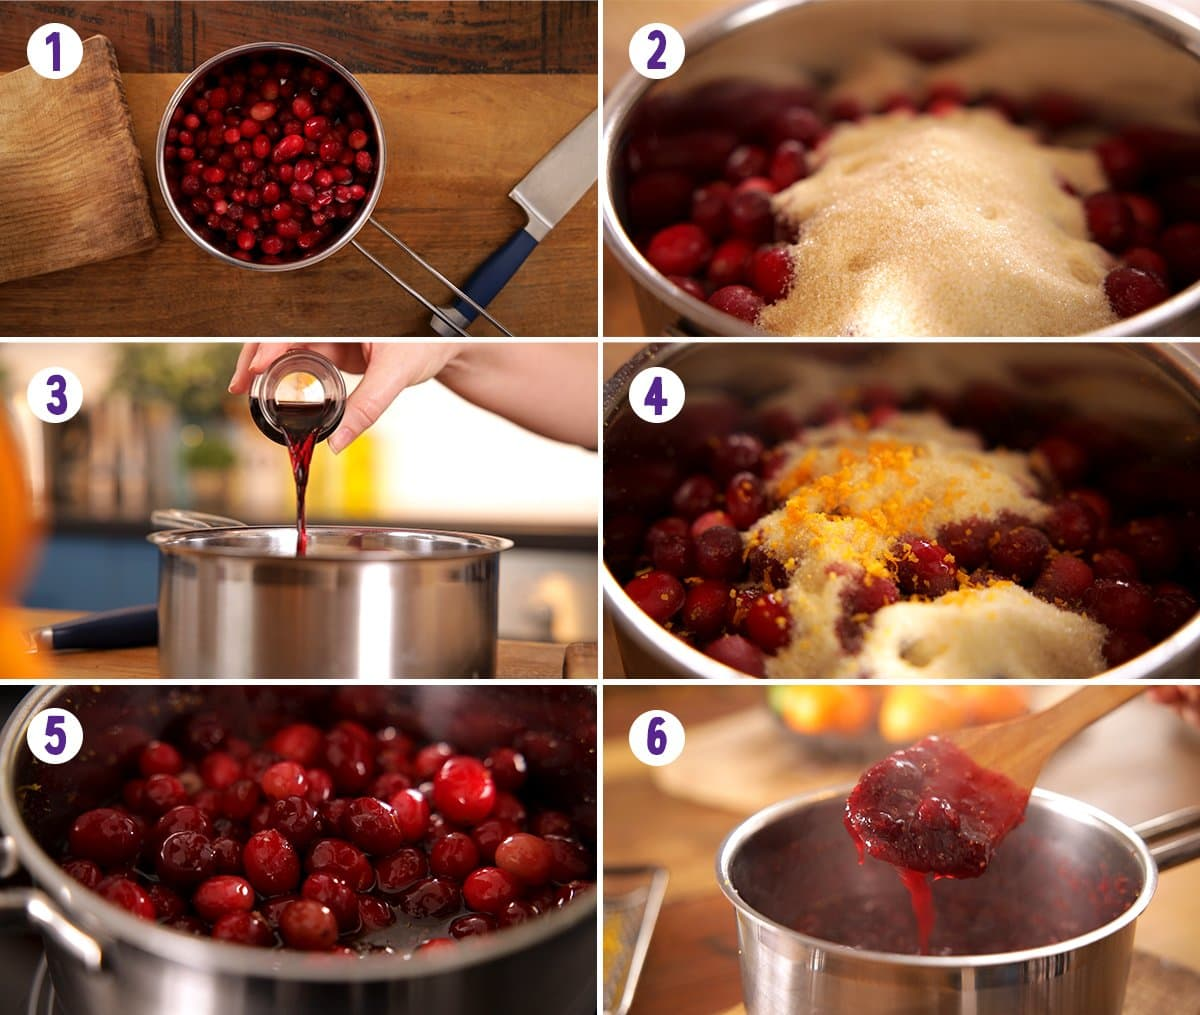 6 image collage showing how to make cranberry sauce